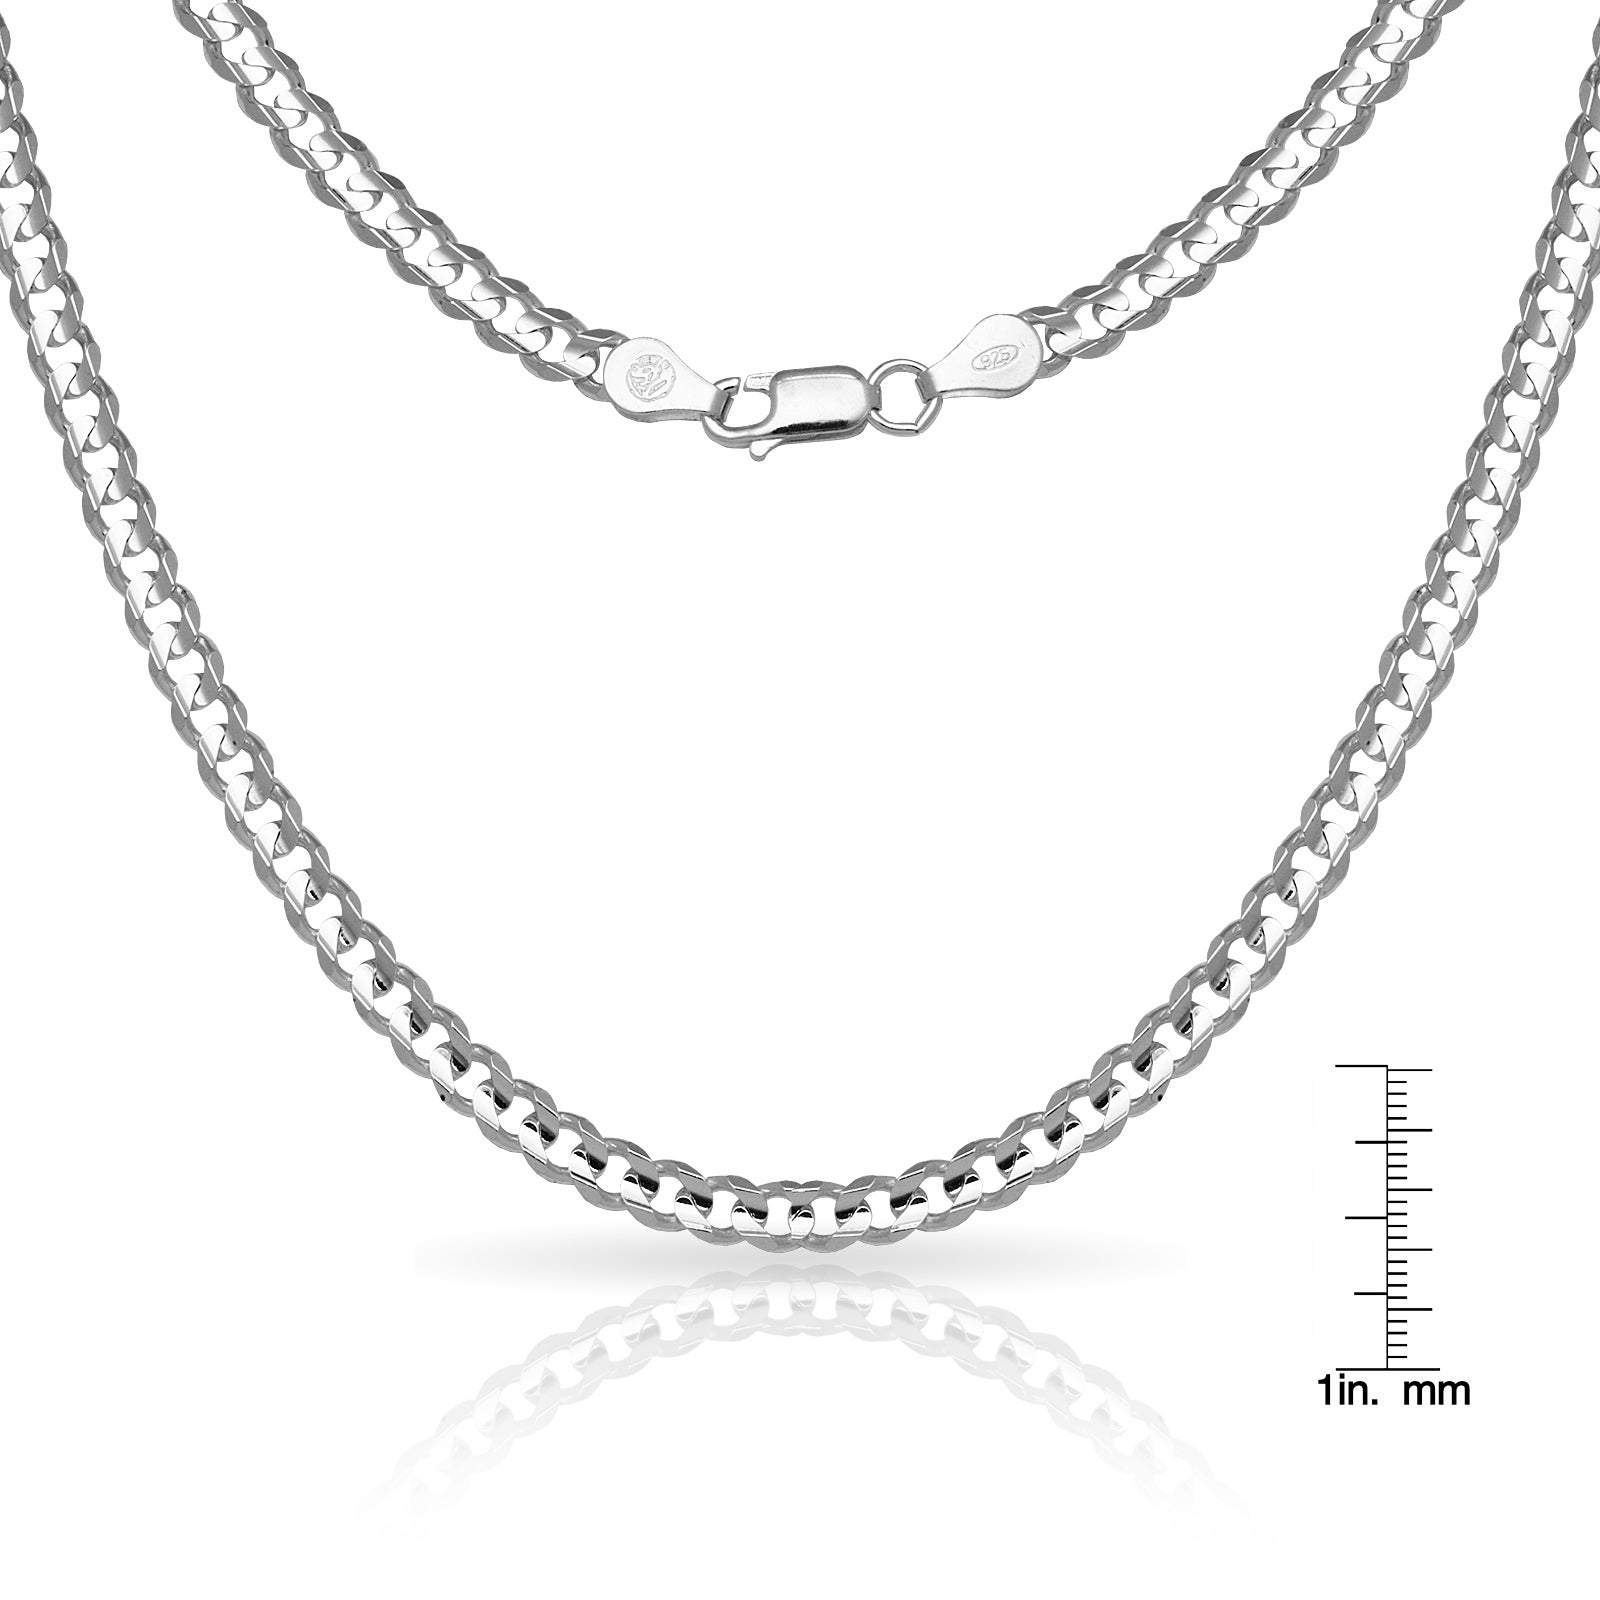 5e4a21a8c8a60 Sterling Silver Men's Italian 6mm Concave Curb Chain Necklace (18